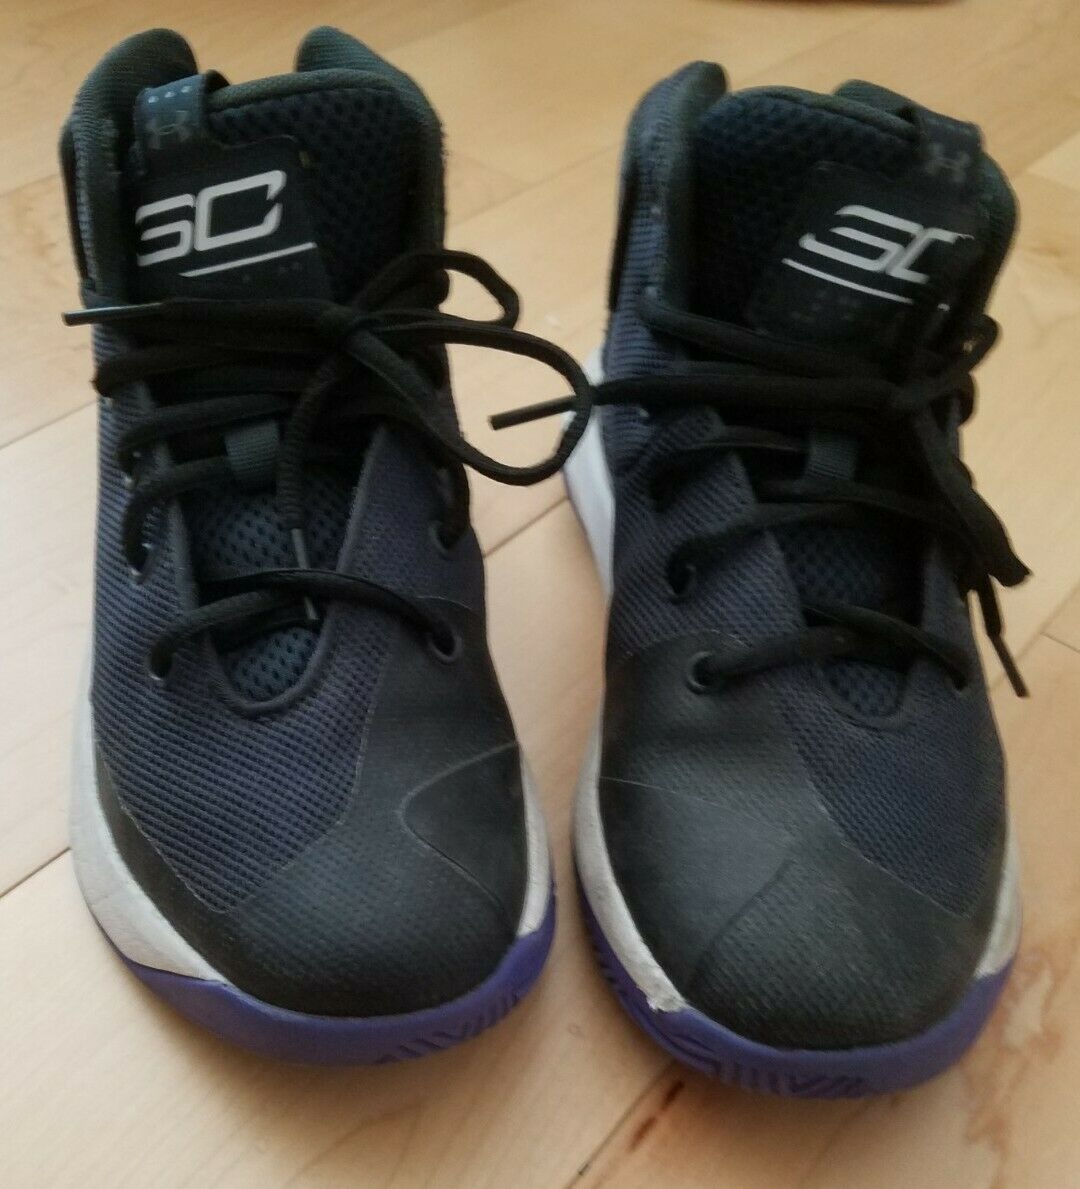 youth basketball shoes size 4